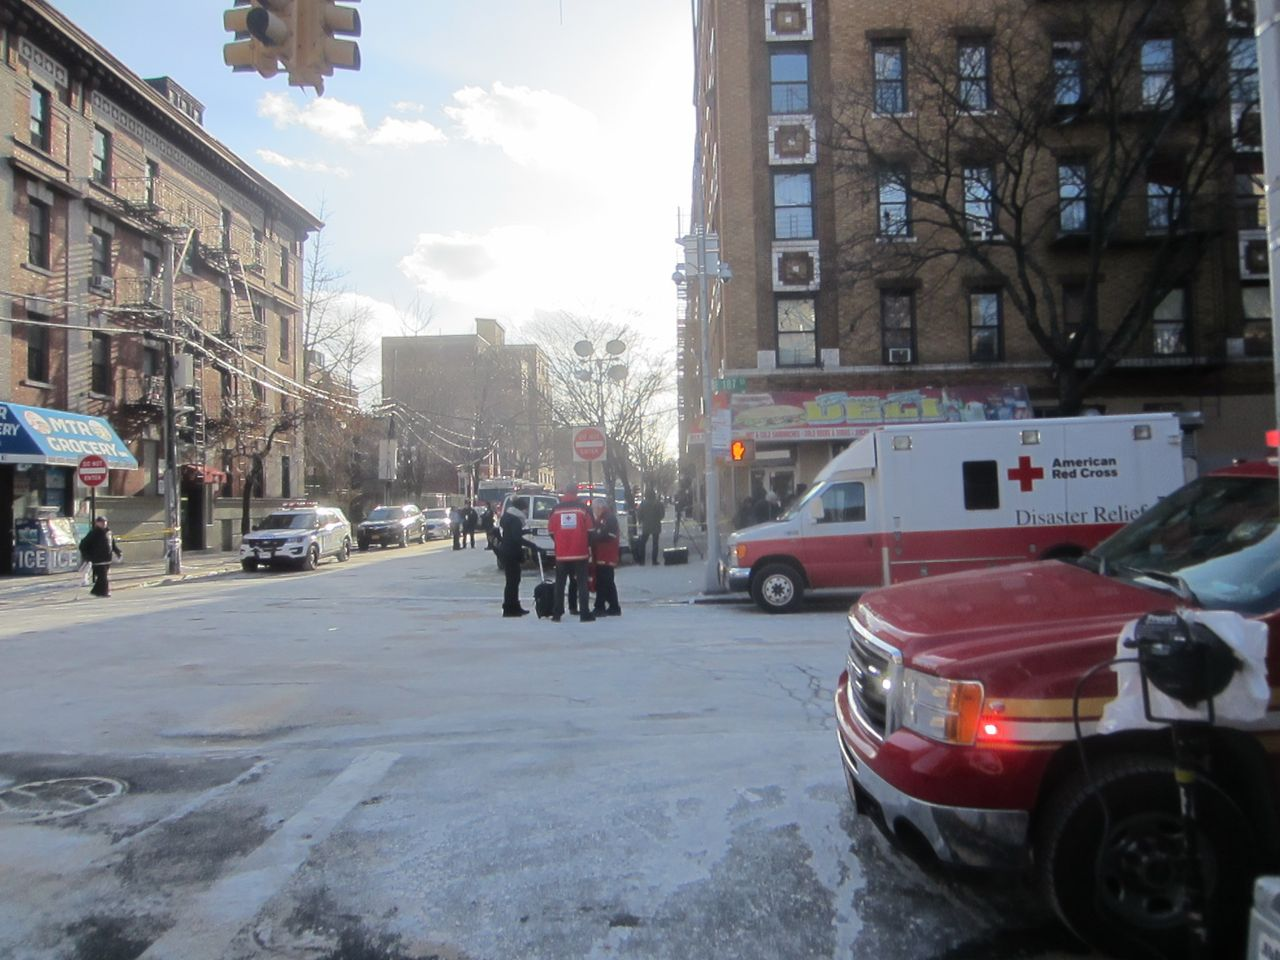 Emergency responders near the site of the fire in the Bronx, New York City